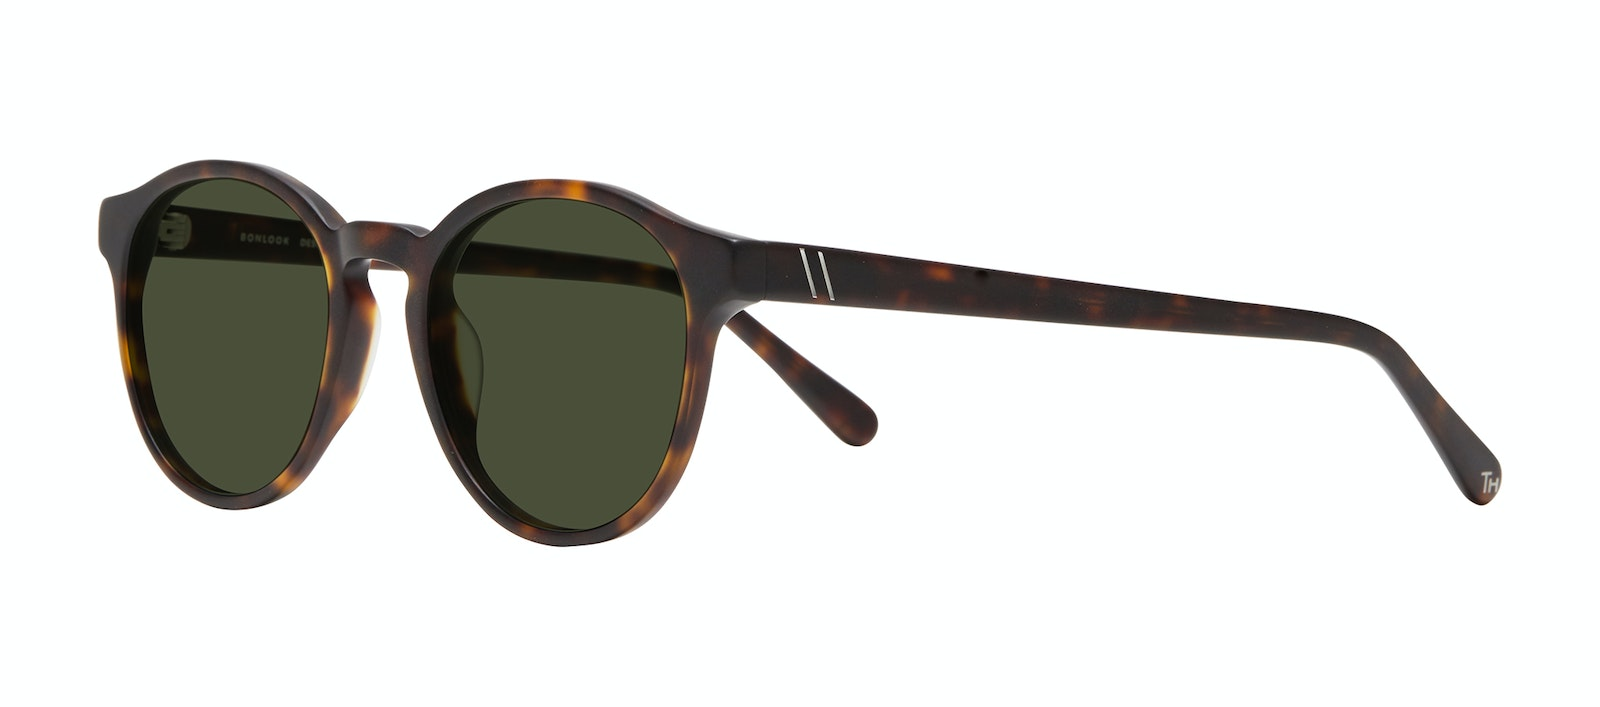 Affordable Fashion Glasses Round Sunglasses Men Aussie Matte Tortoise Tilt